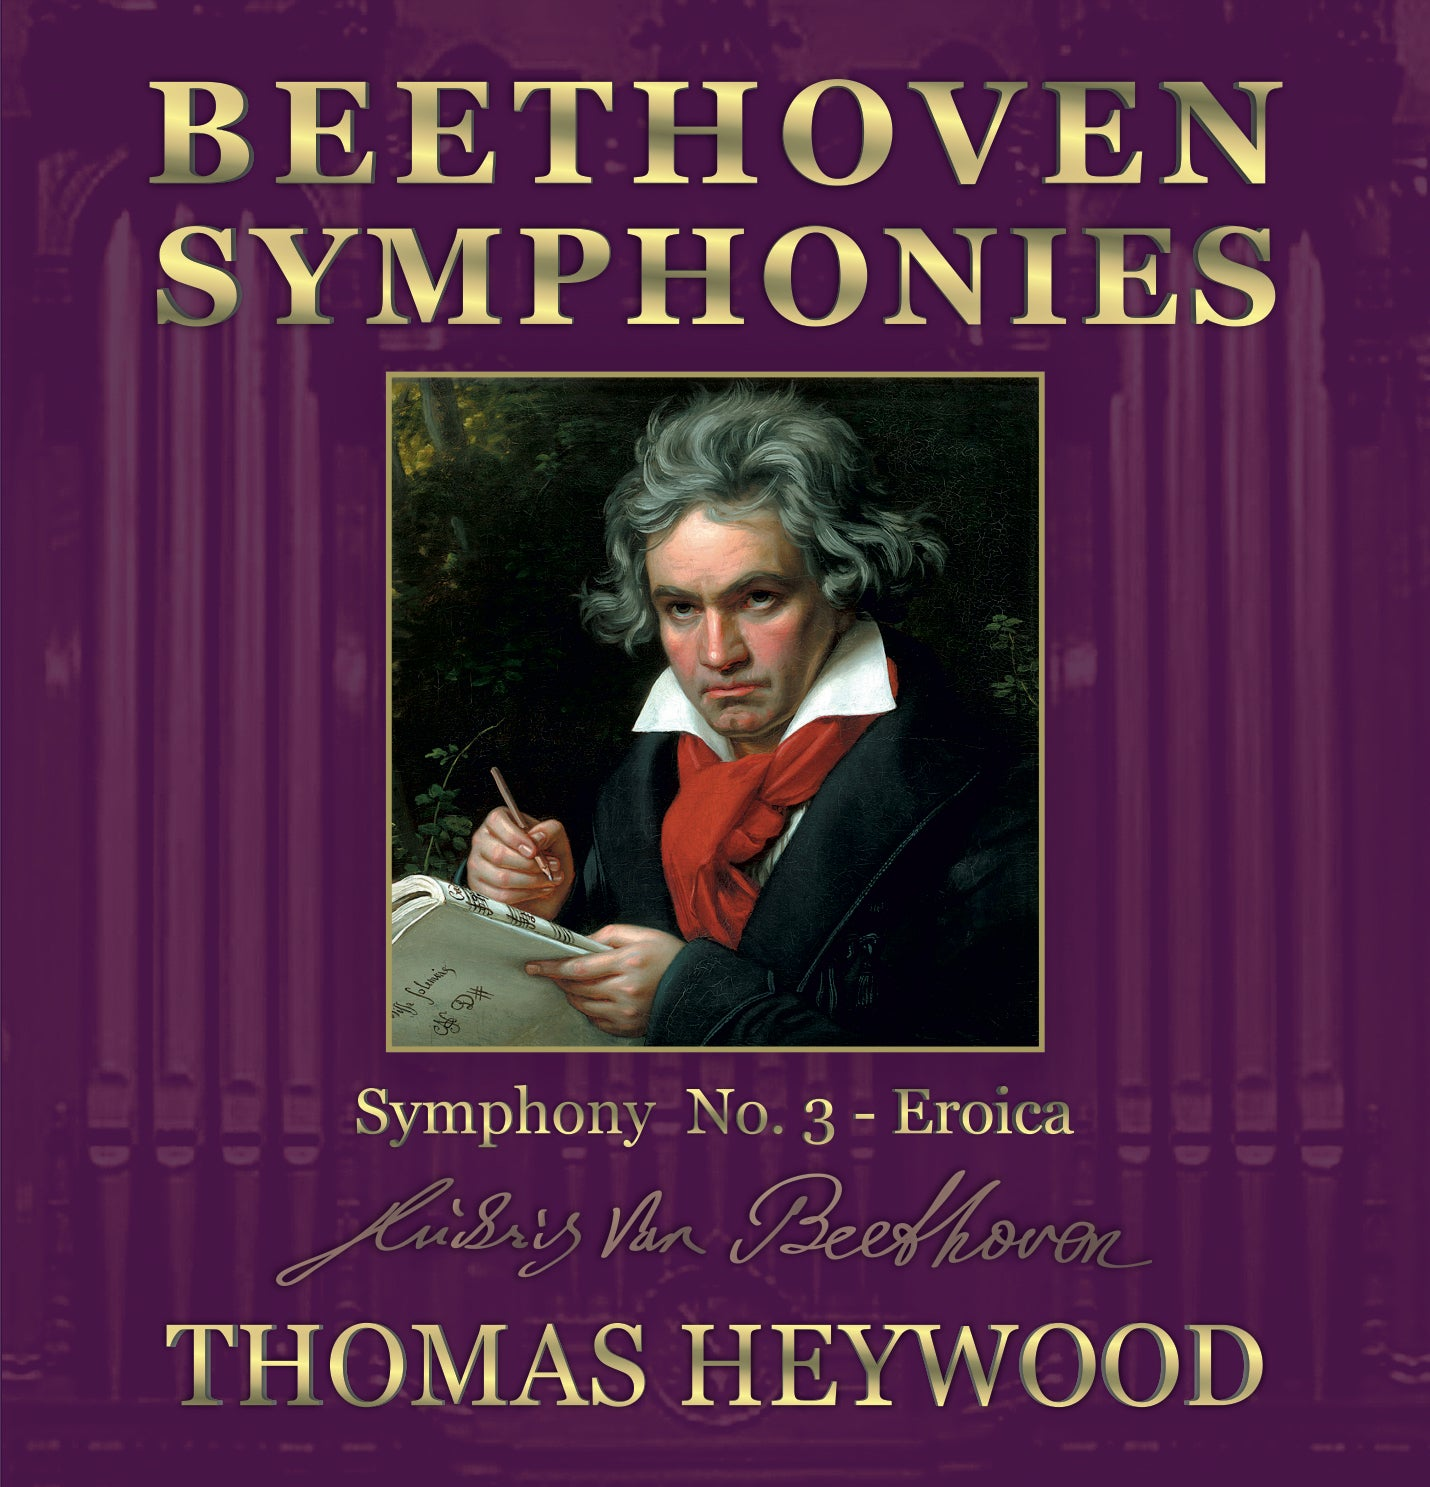 Beethoven/Heywood - Symphony No. 3 in E-flat major, Op. 55 - 'Eroica' (MP3 Album) | Thomas Heywood | Concert Organ International